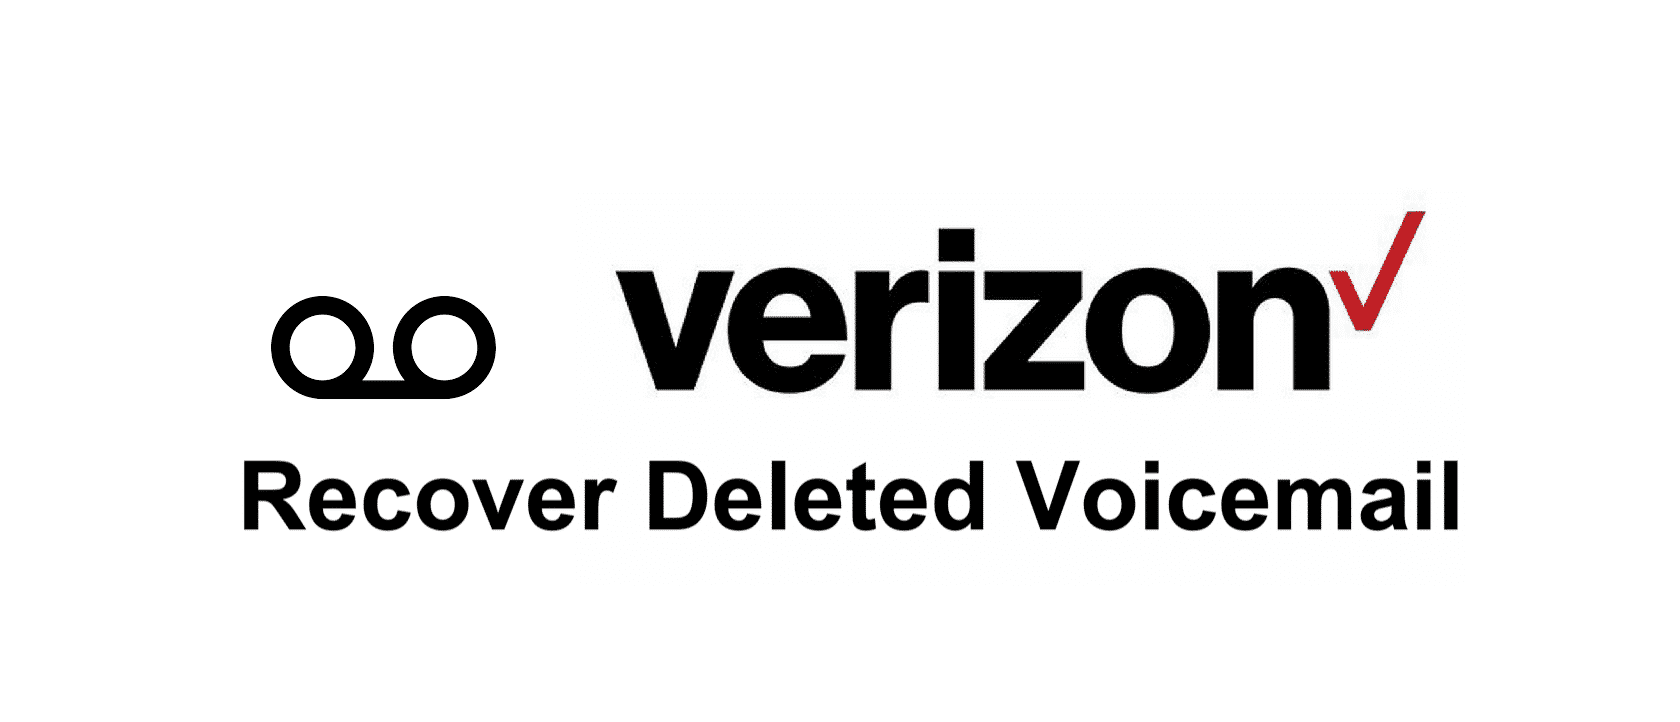 verizon recover deleted voicemail